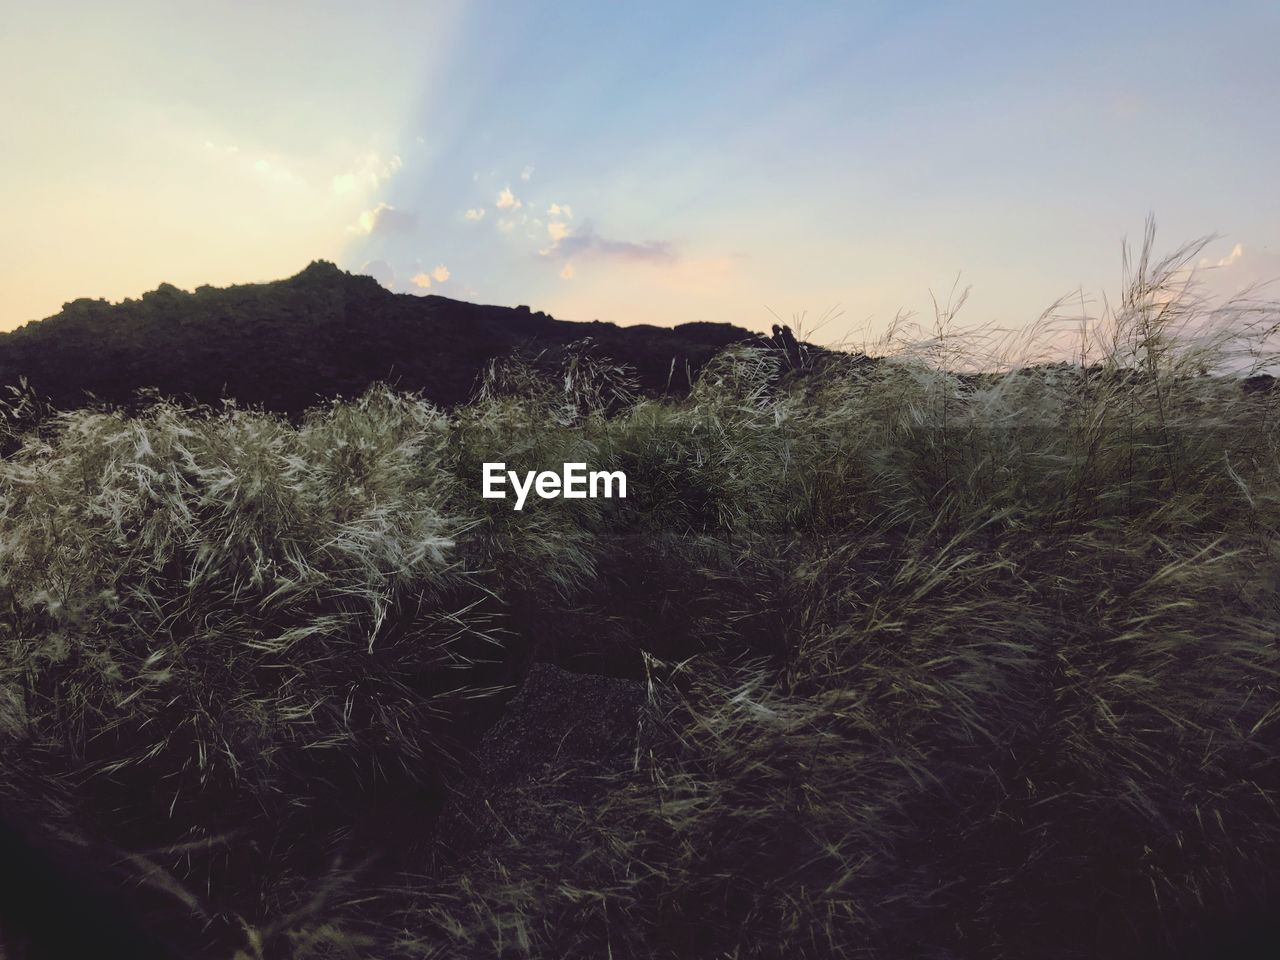 plant, sky, tranquility, growth, beauty in nature, tranquil scene, no people, land, nature, sunset, landscape, non-urban scene, field, environment, scenics - nature, mountain, grass, outdoors, day, cloud - sky, timothy grass